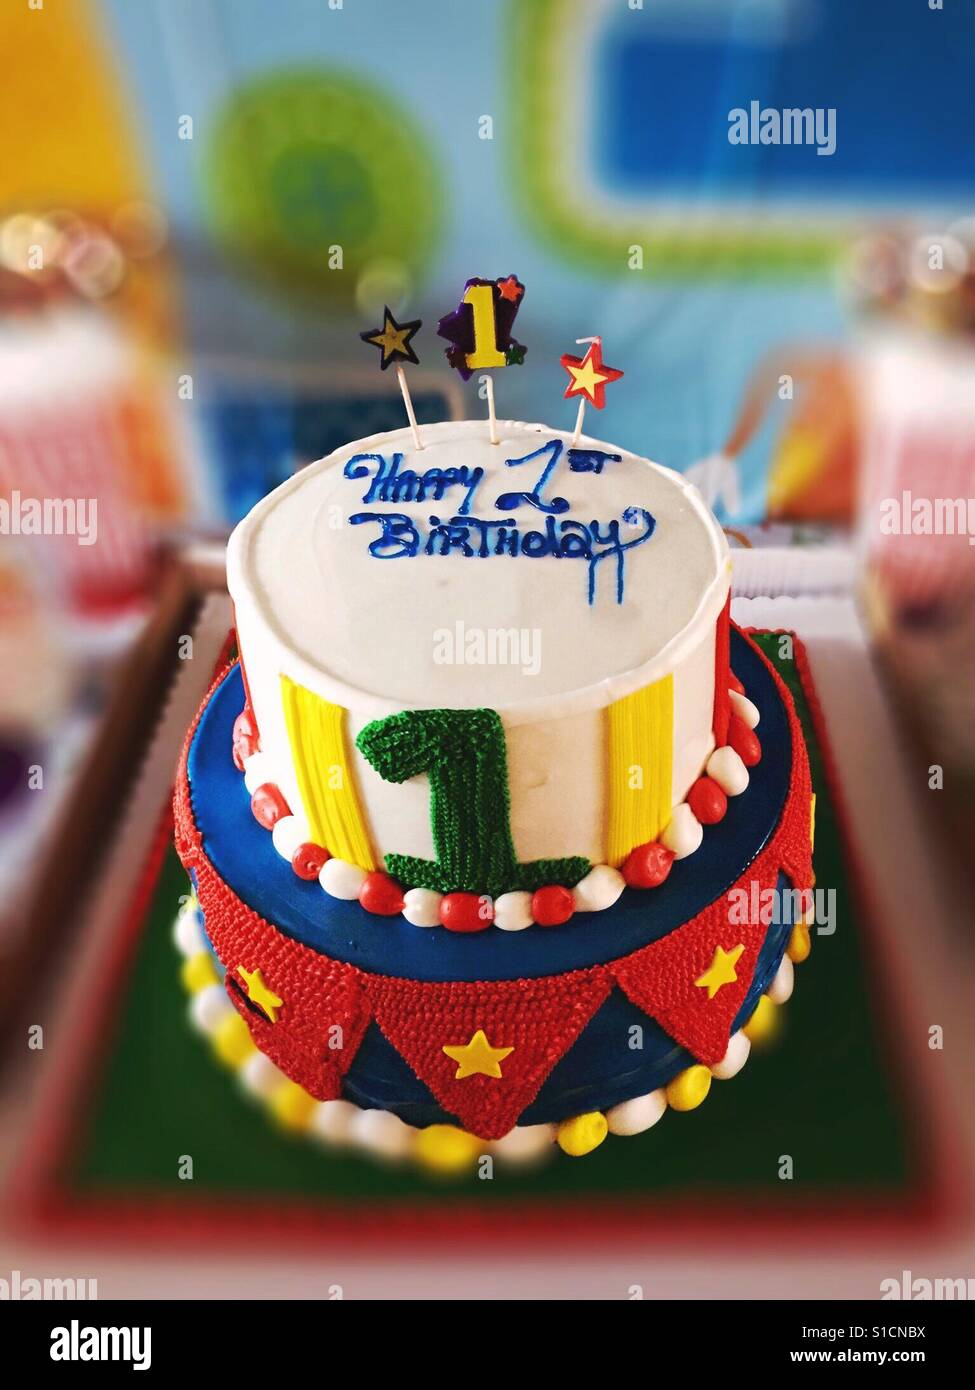 First Birthday Colorful Circus Themed Cake Stock Photo 310681502